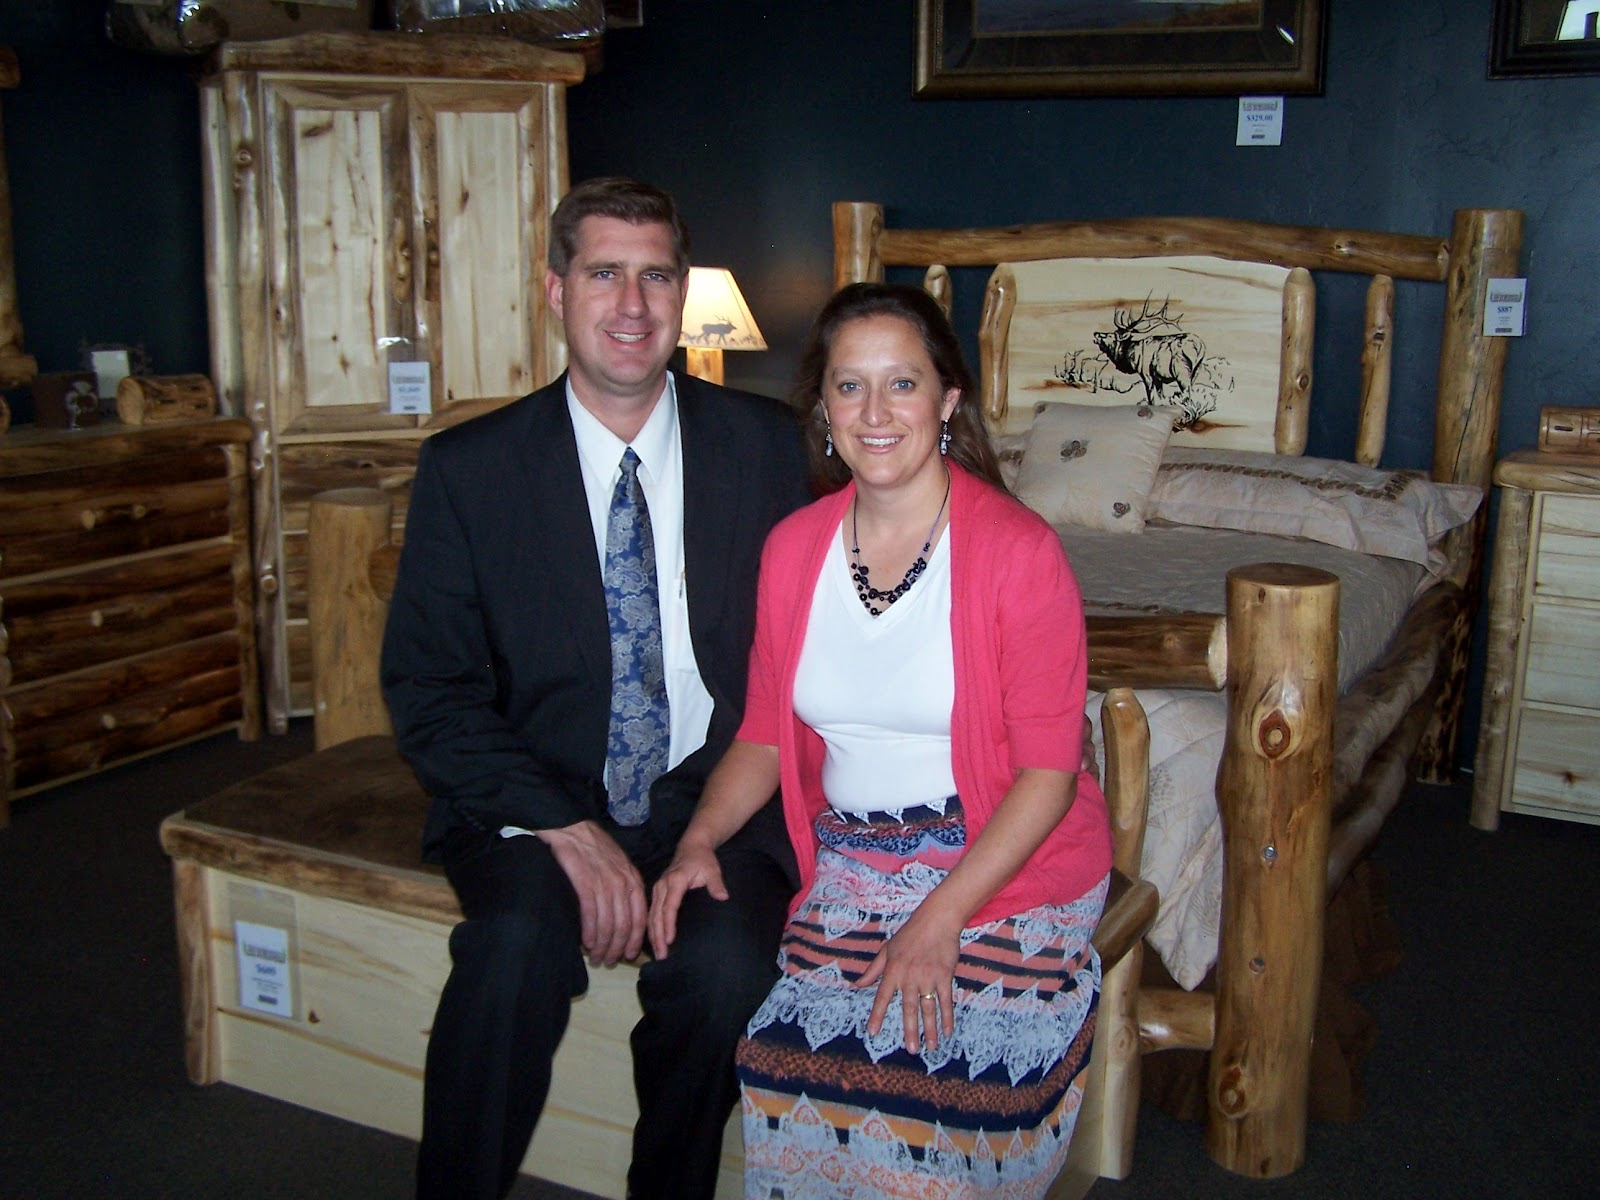 On June 22, 2012, Alamosa Business Owners Randy And Micah Jackson Of Rustic  Log Furniture Were Recognized In Denver As One Of Coloradou0027s Companies To  Watch.